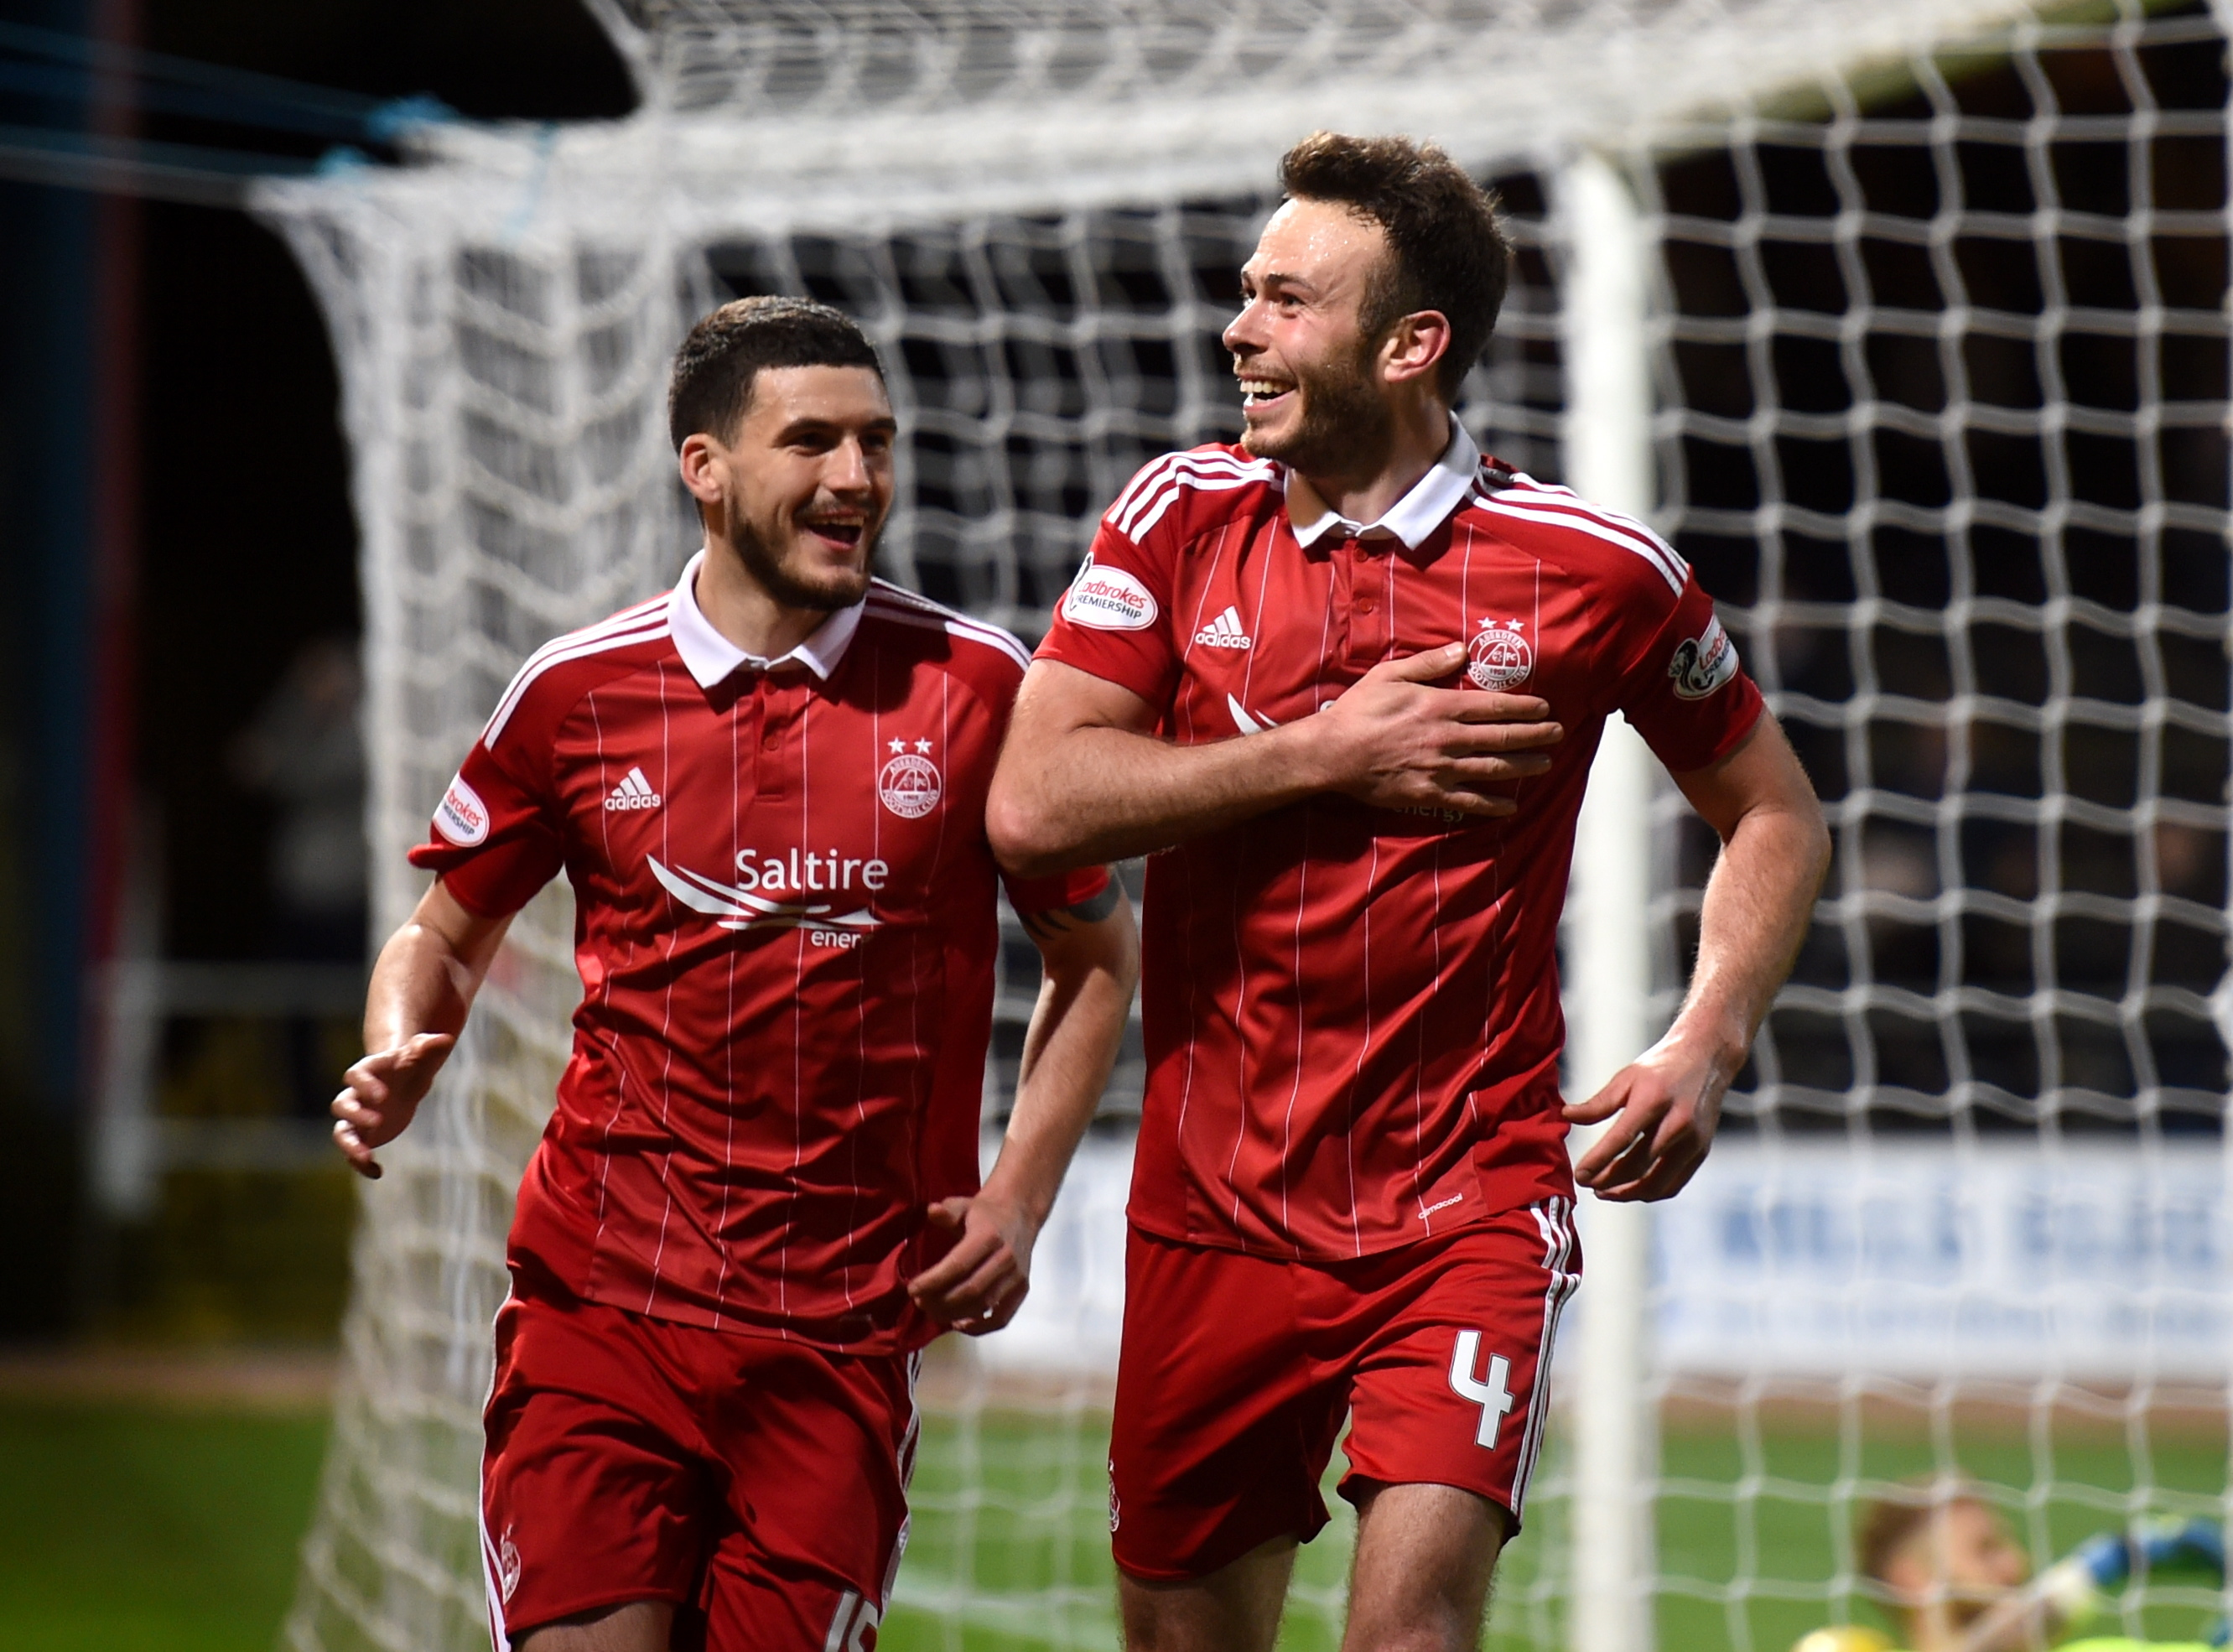 Aberdeen's Andrew Considine wheels away after capping off a remarkable hat-trick at Dundee. (Picture by Darrell Benns.)